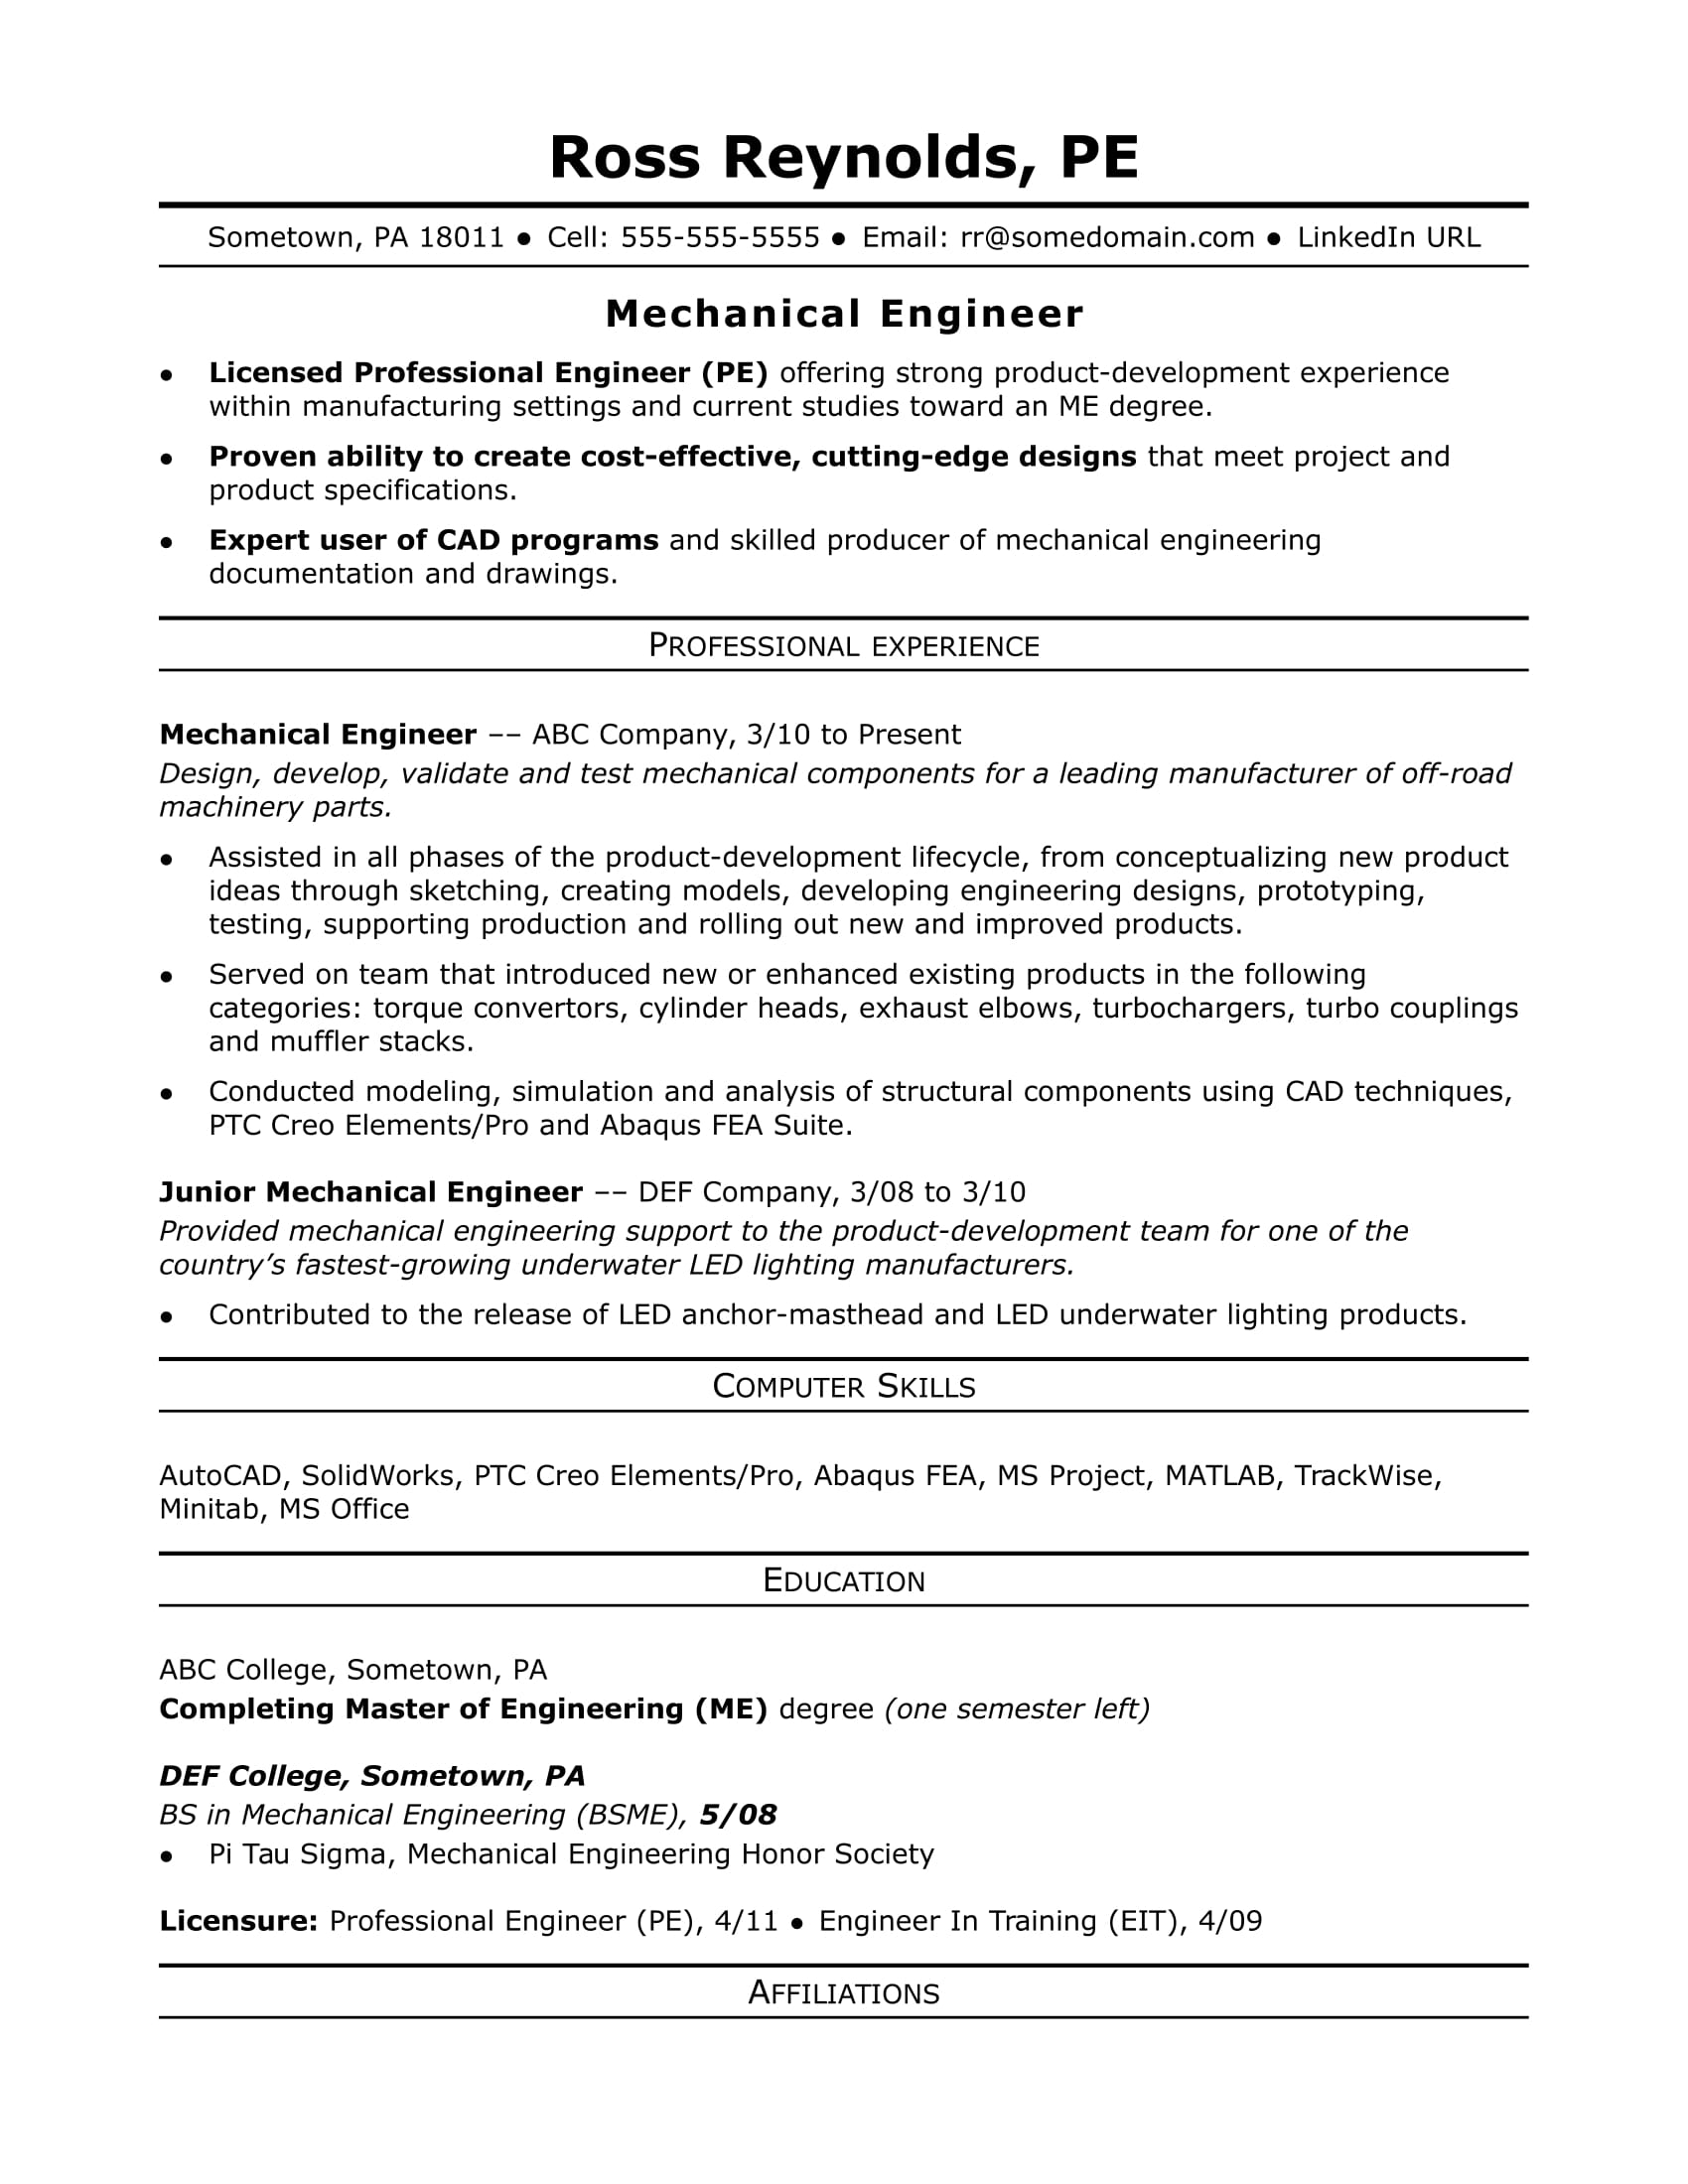 Captivating Sample Resume For A Midlevel Mechanical Engineer Pertaining To Resume For Mechanical Engineer